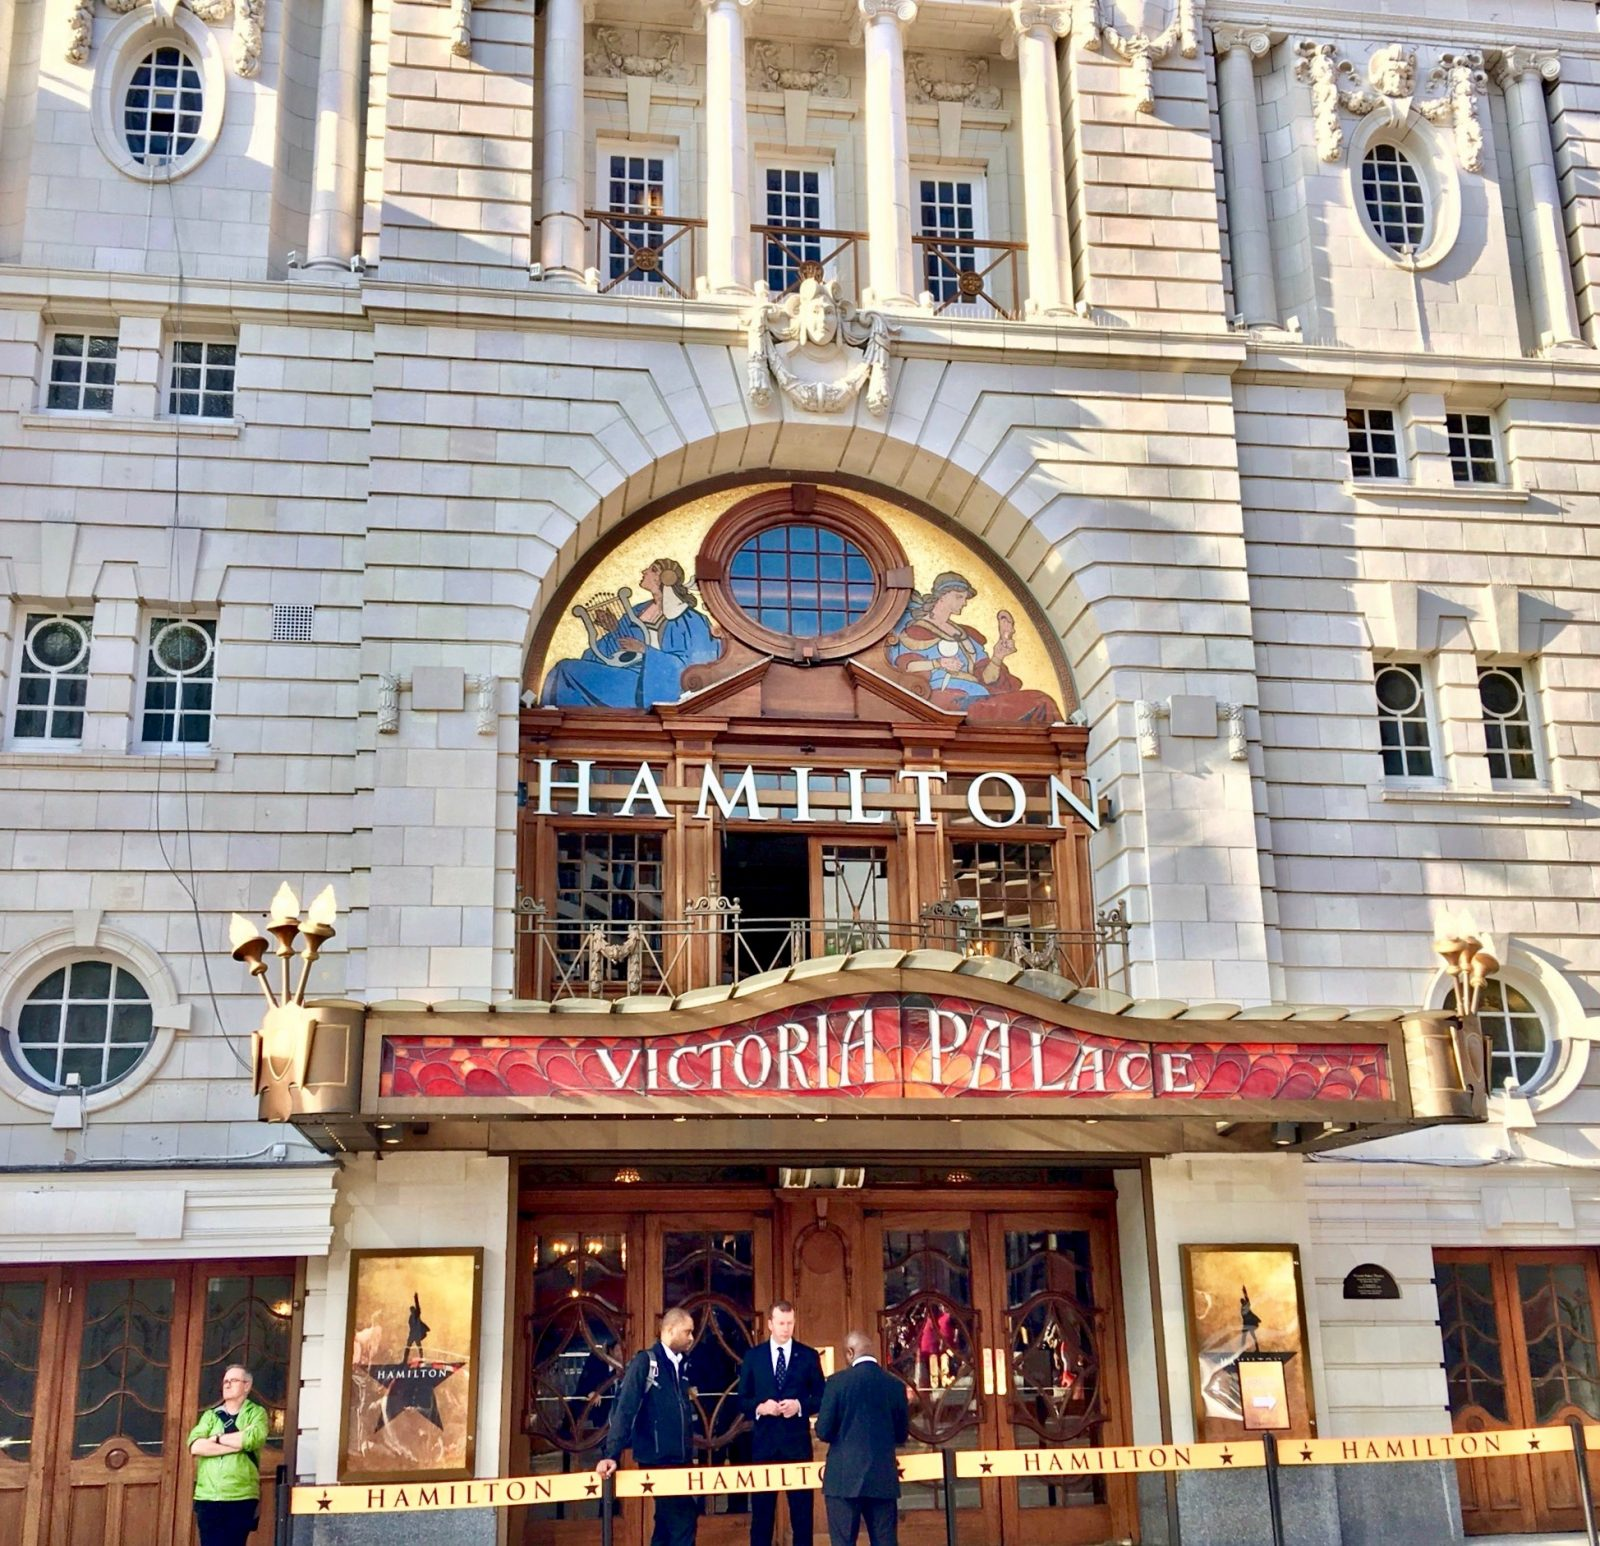 victoria palace theatre with hamilton sign outside